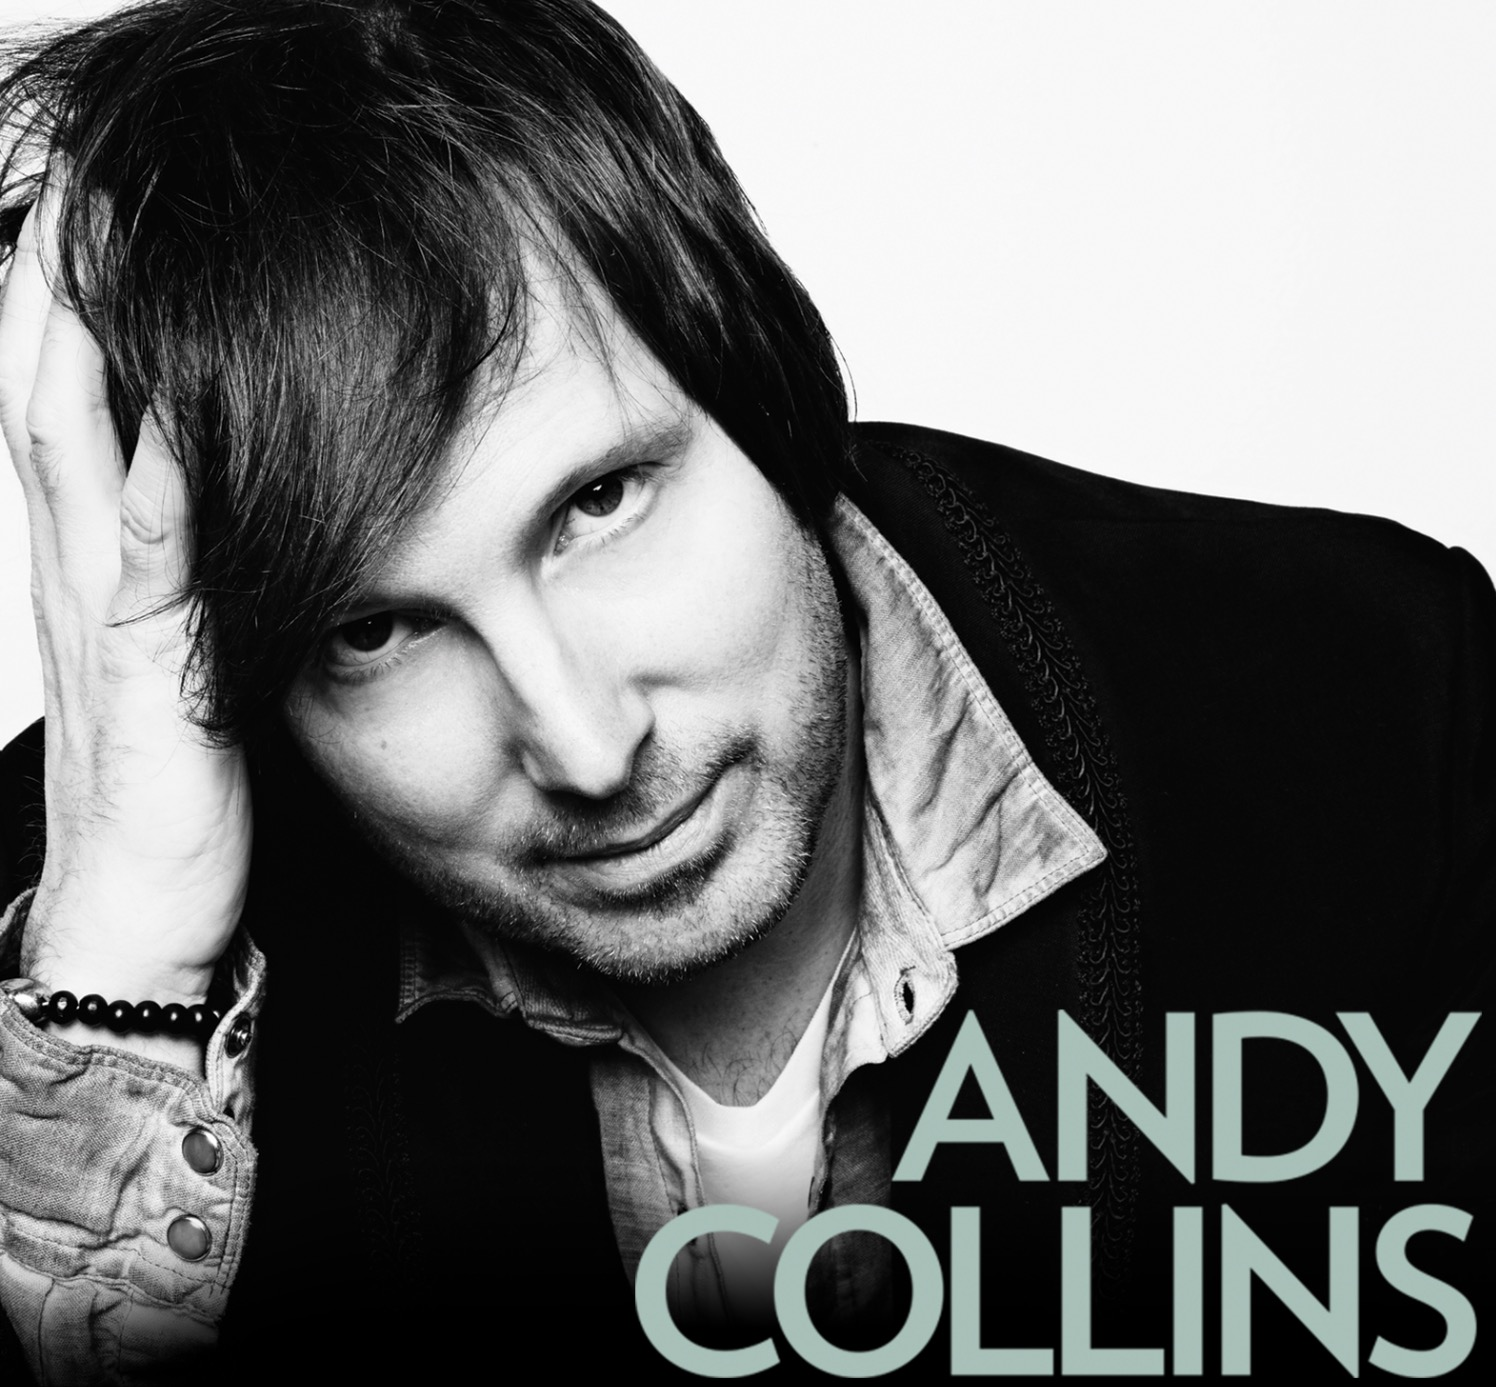 ANDY COLLINS